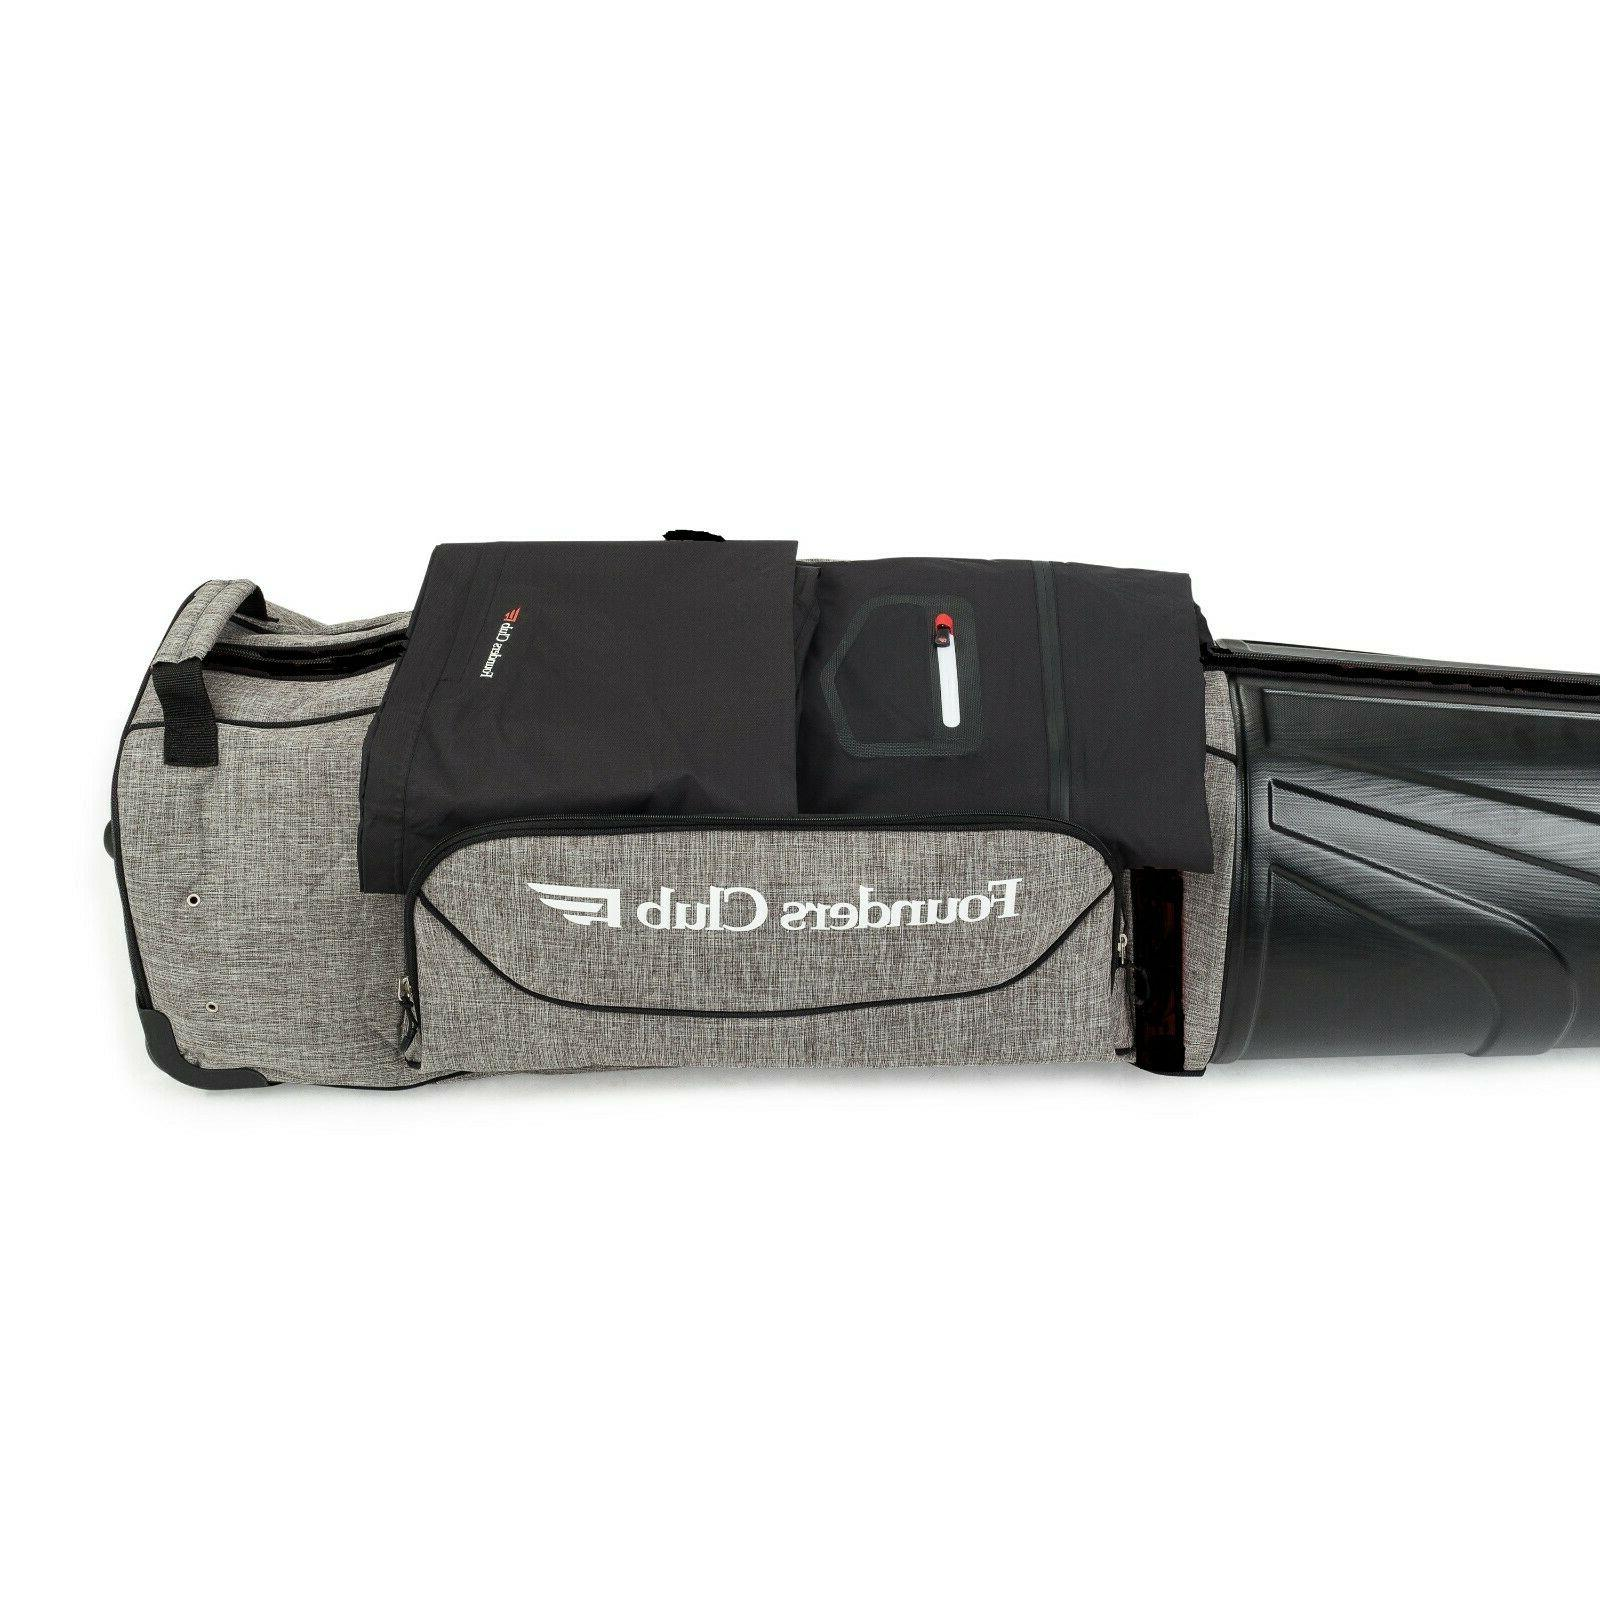 Founders Club Travel Bag Luggage with Shell Top